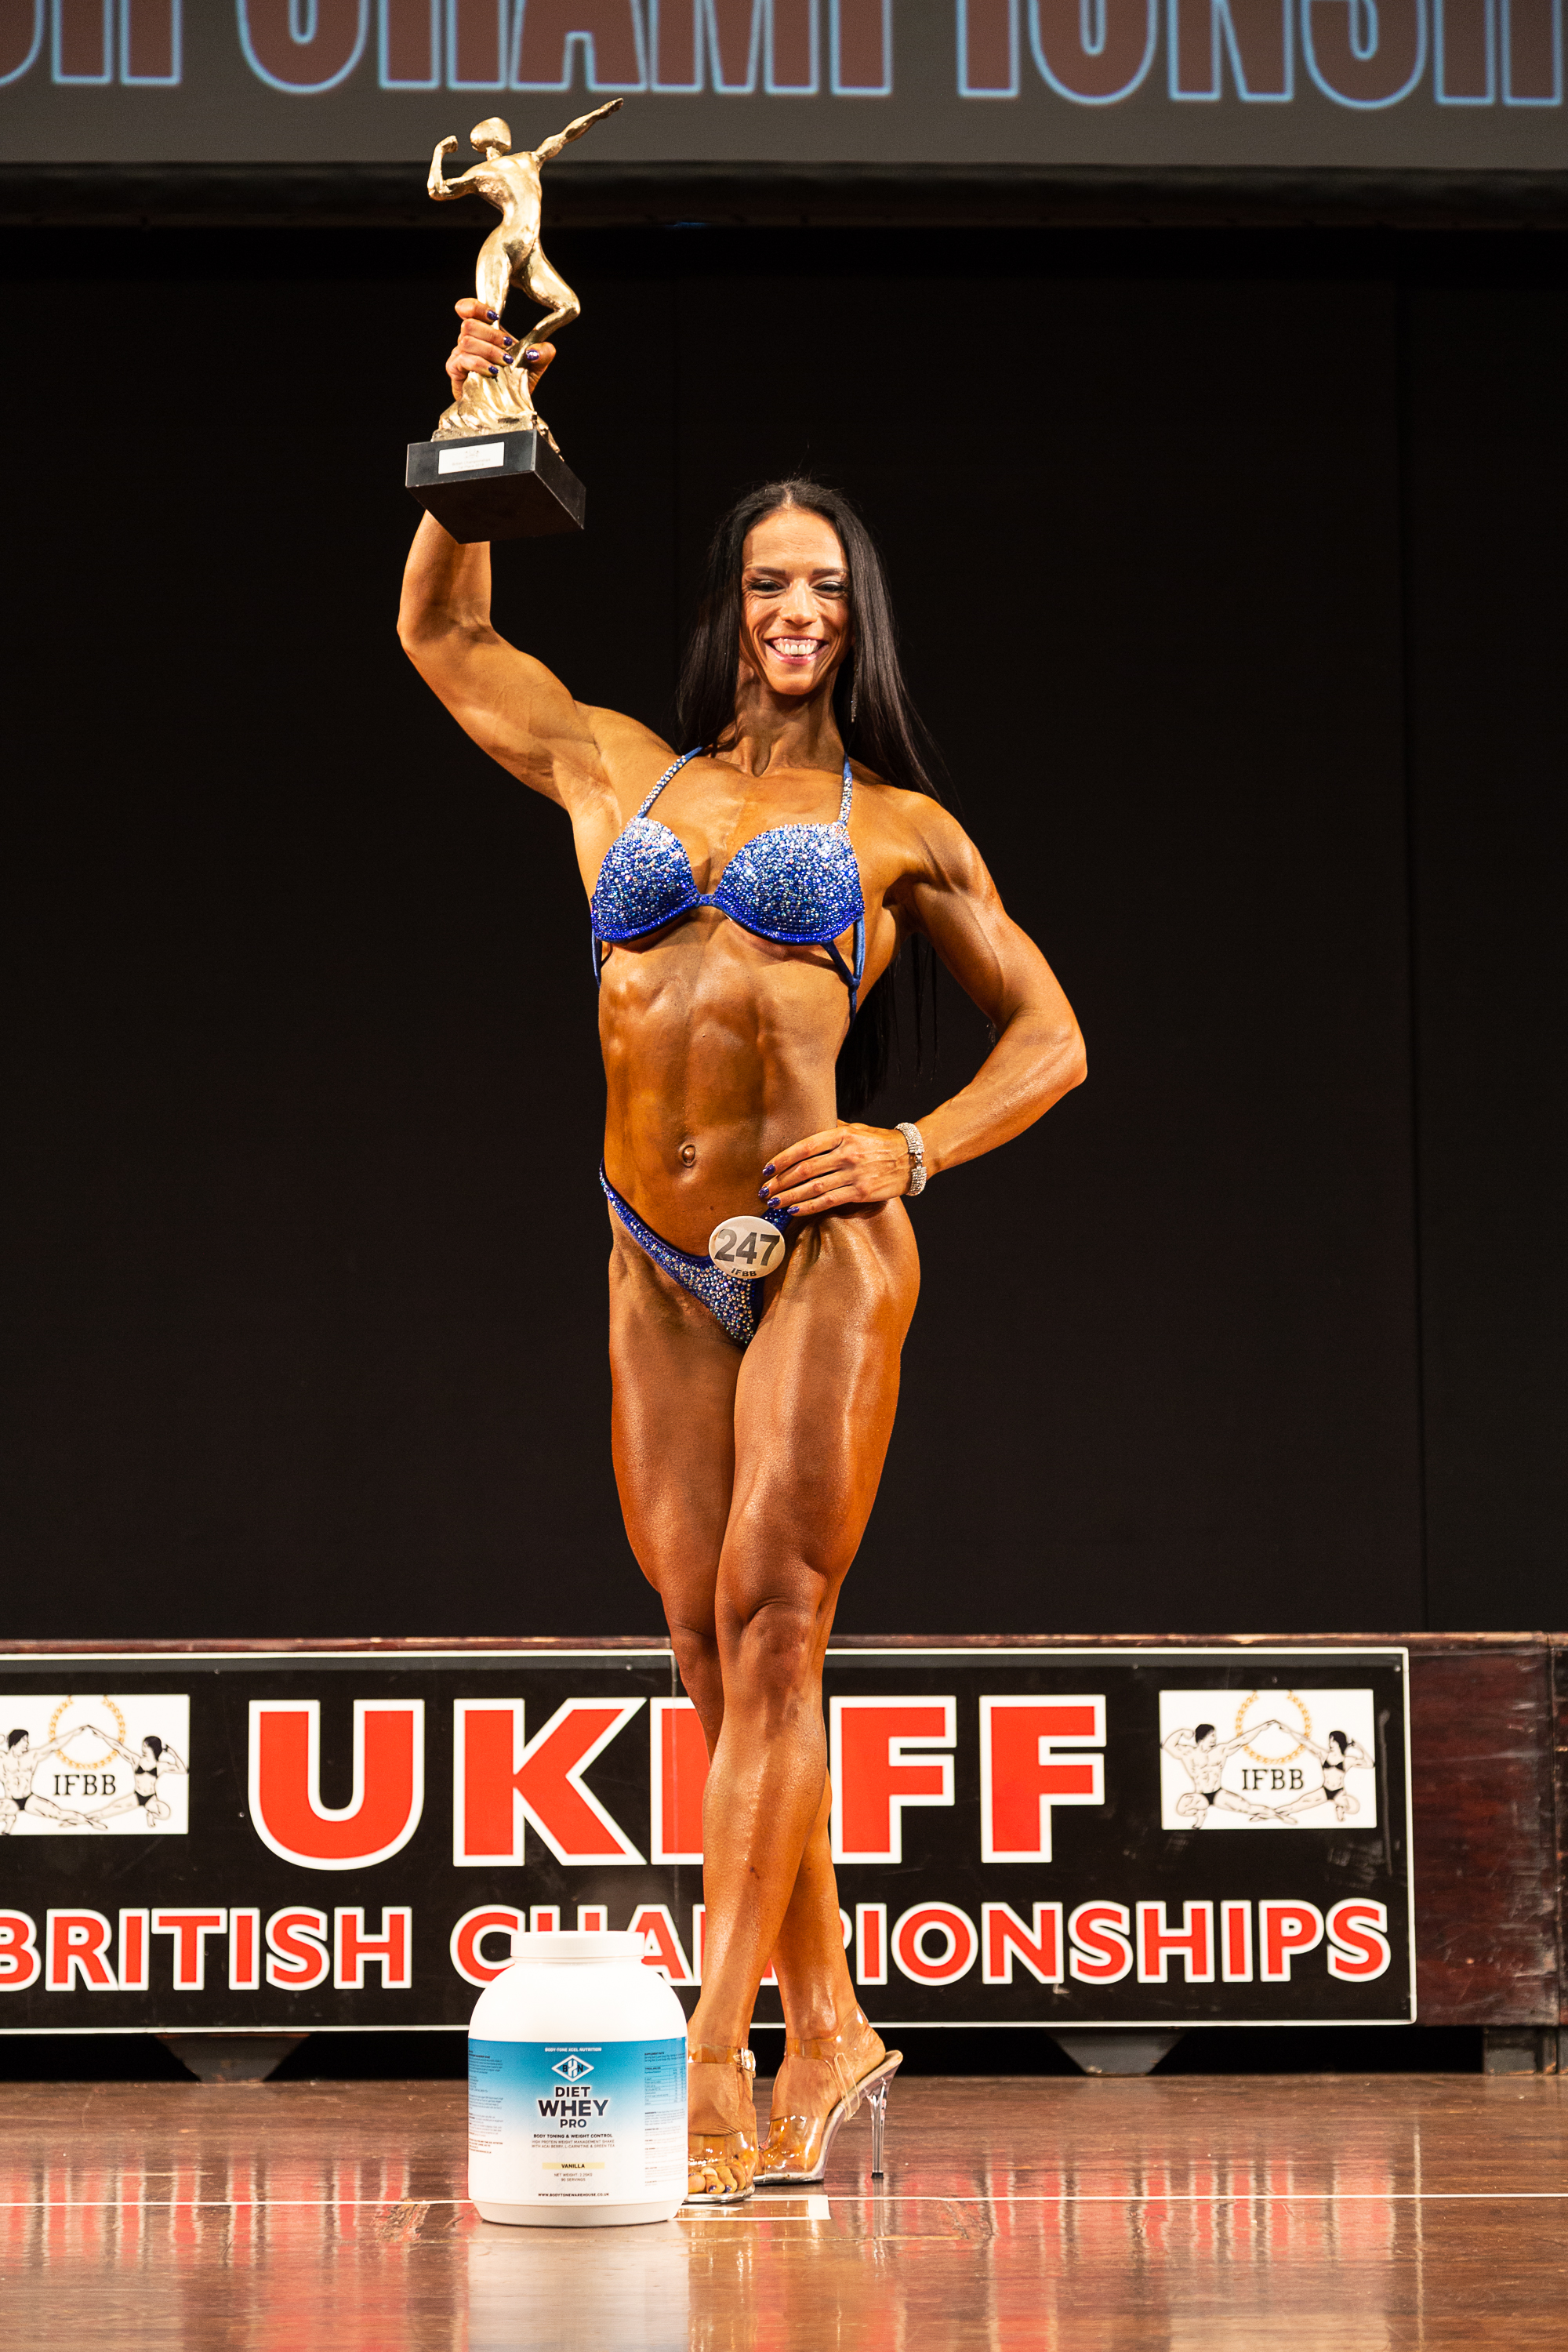 Olga Upelniece, seen here winning masters bodyfitness at the British Championships, has also had a memorable year that included top six at the Arnold Classic Europe. PIC CREDT: Kevin Horton